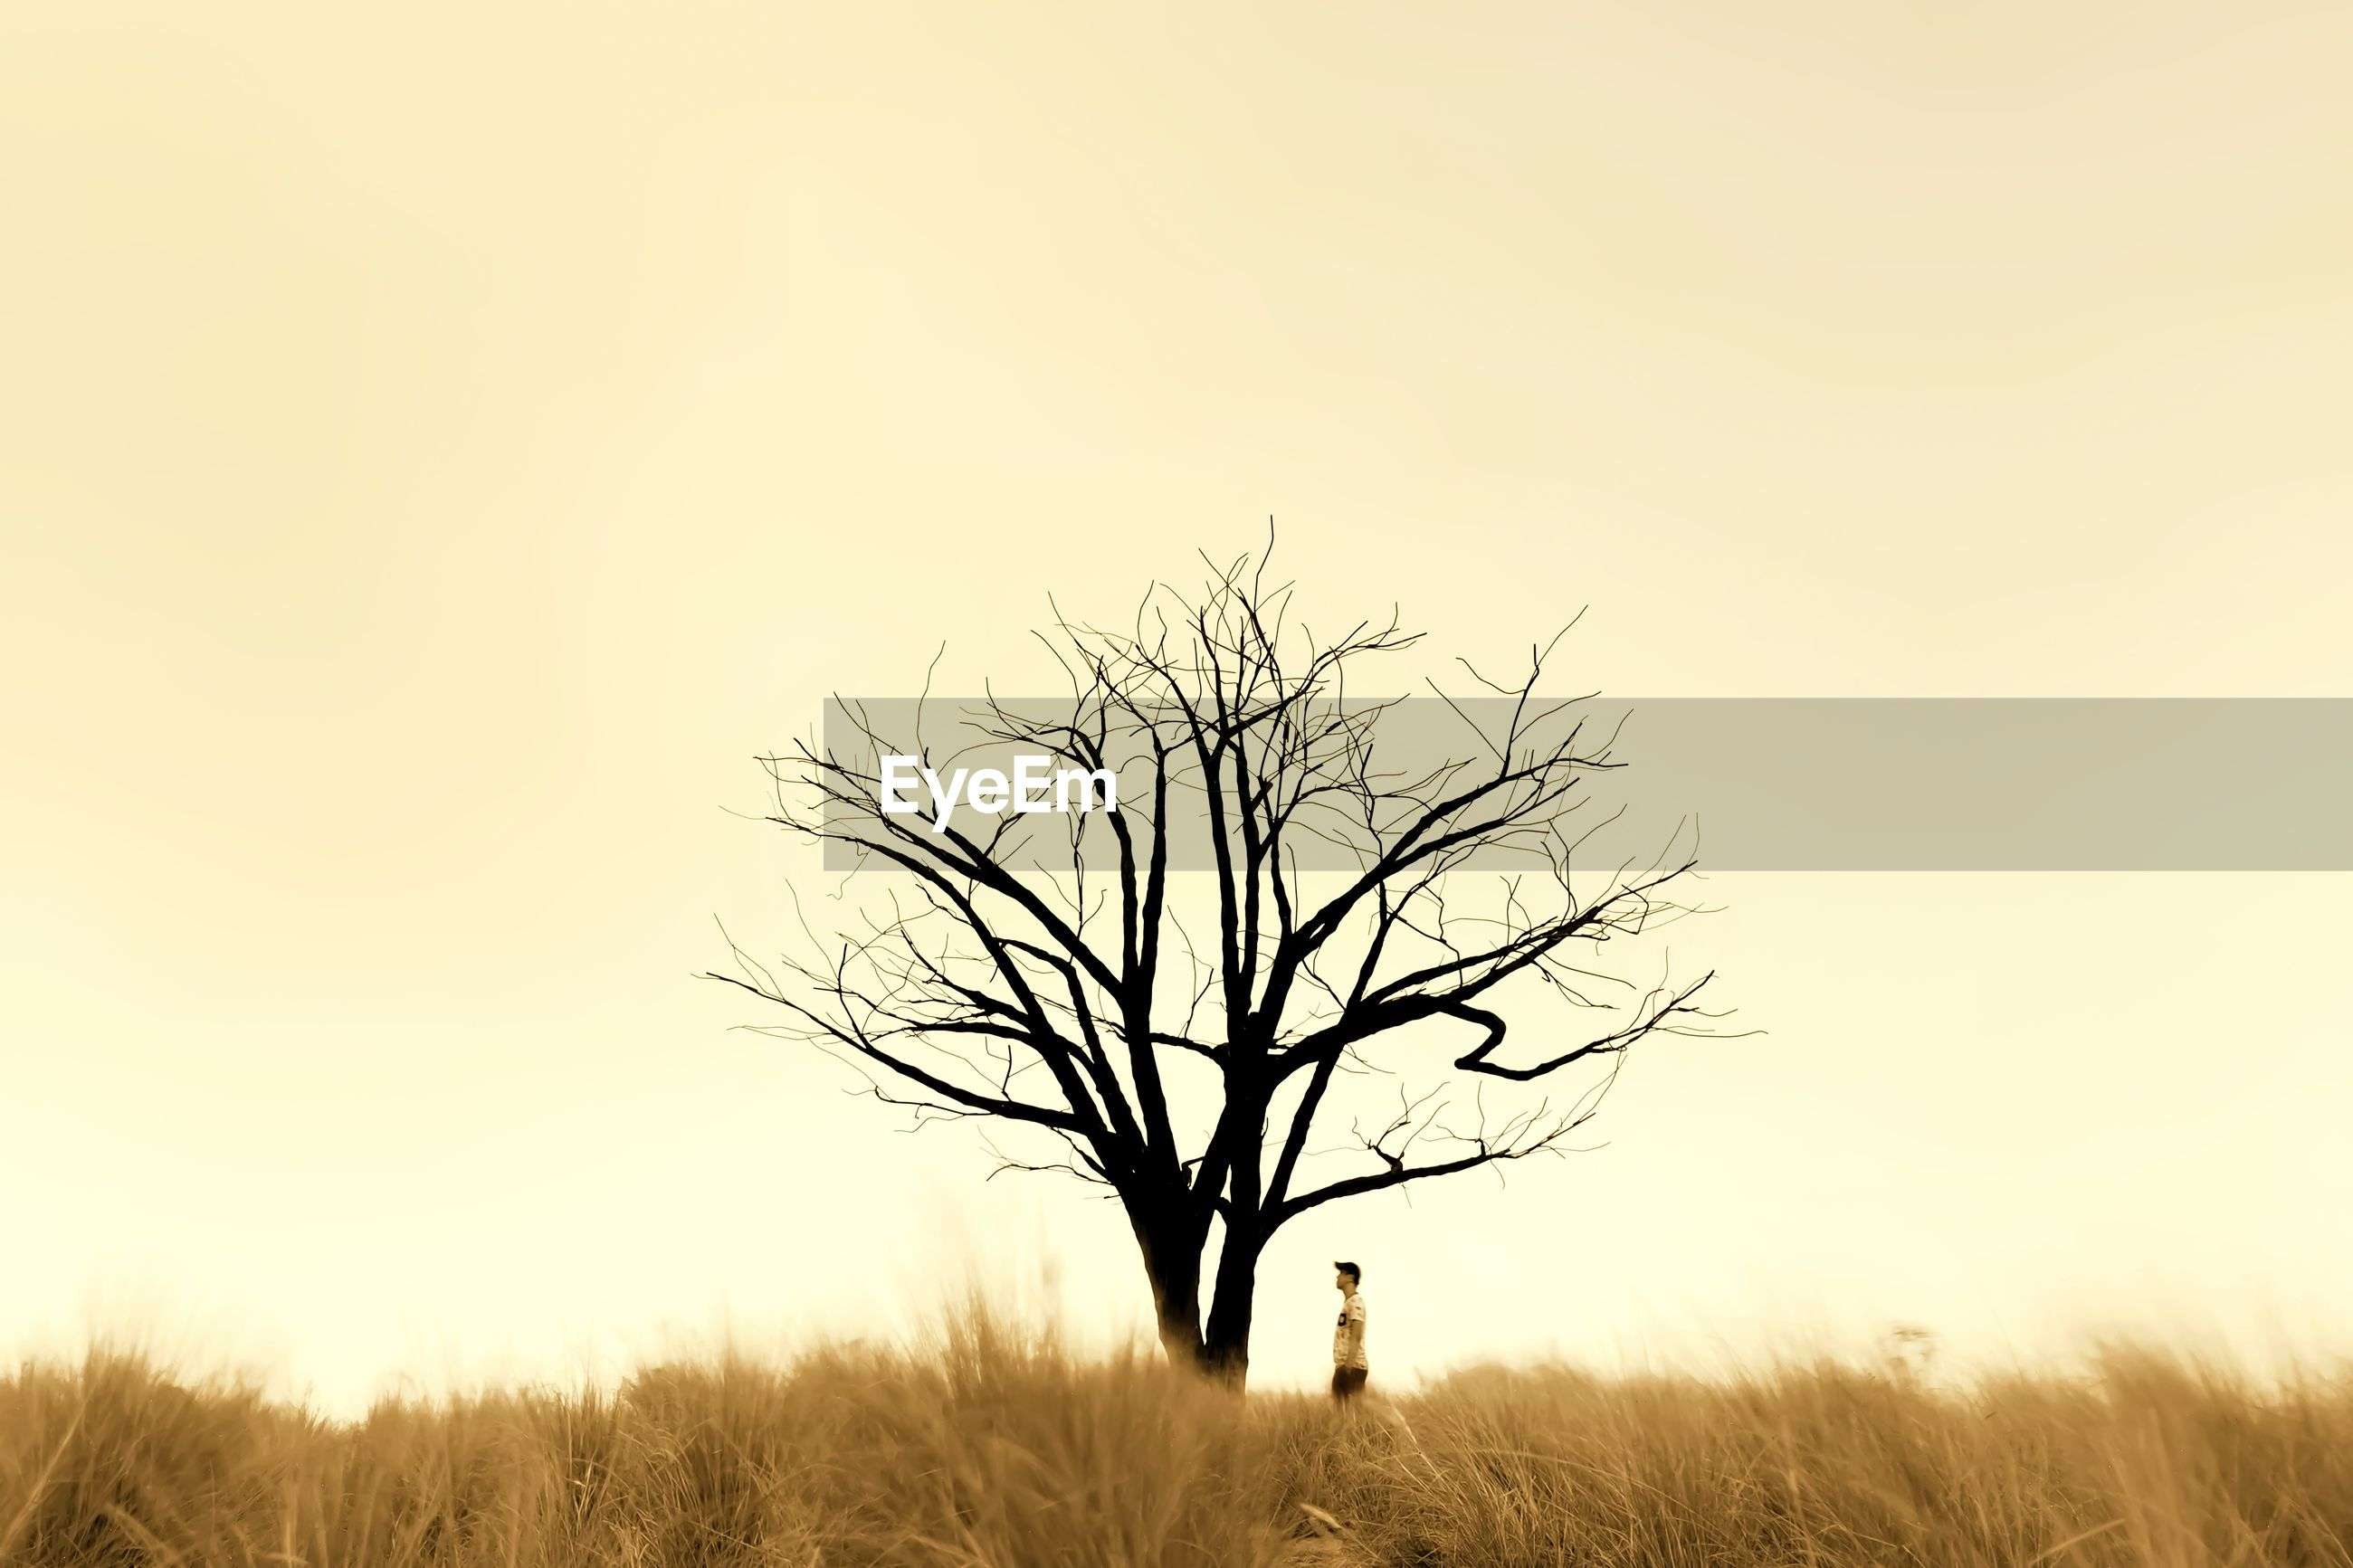 A man standing beside a lone bare tree on a field against clear sky